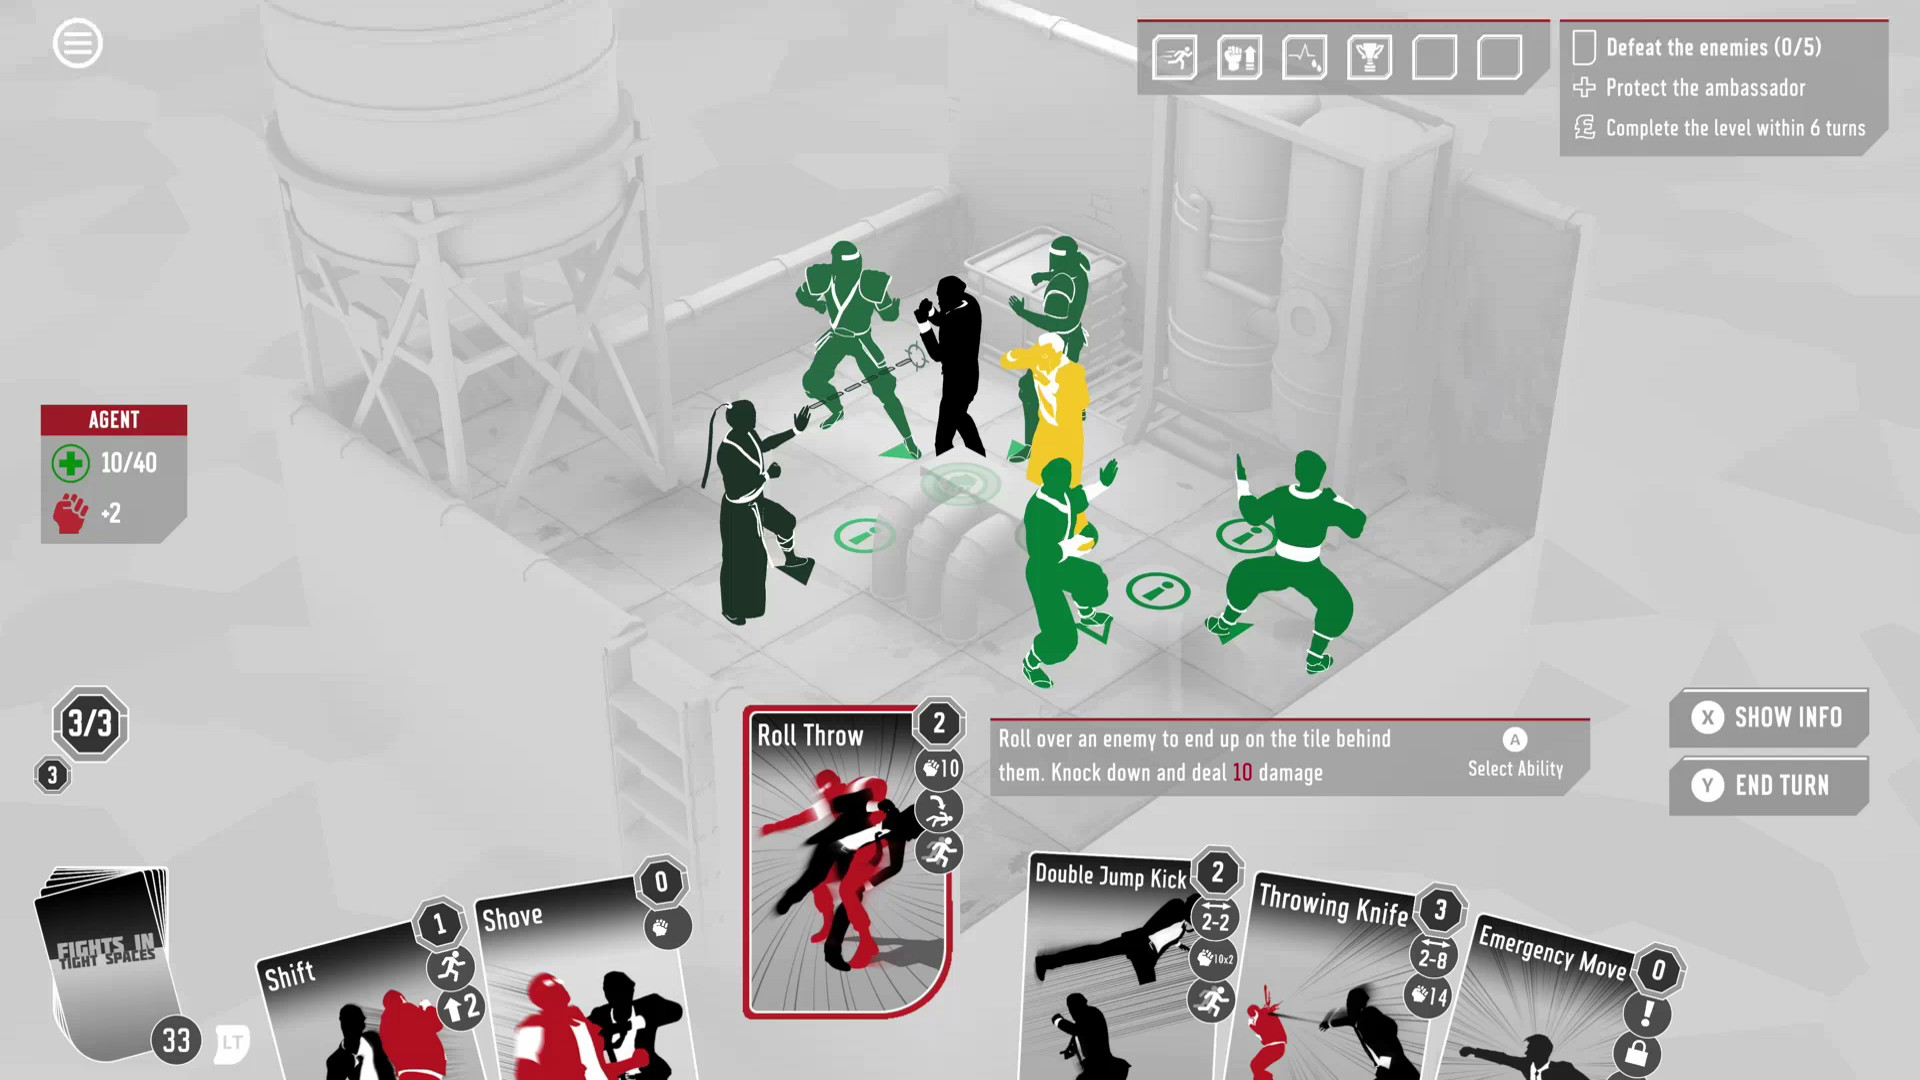 Fights in Tight Spaces screenshot 1